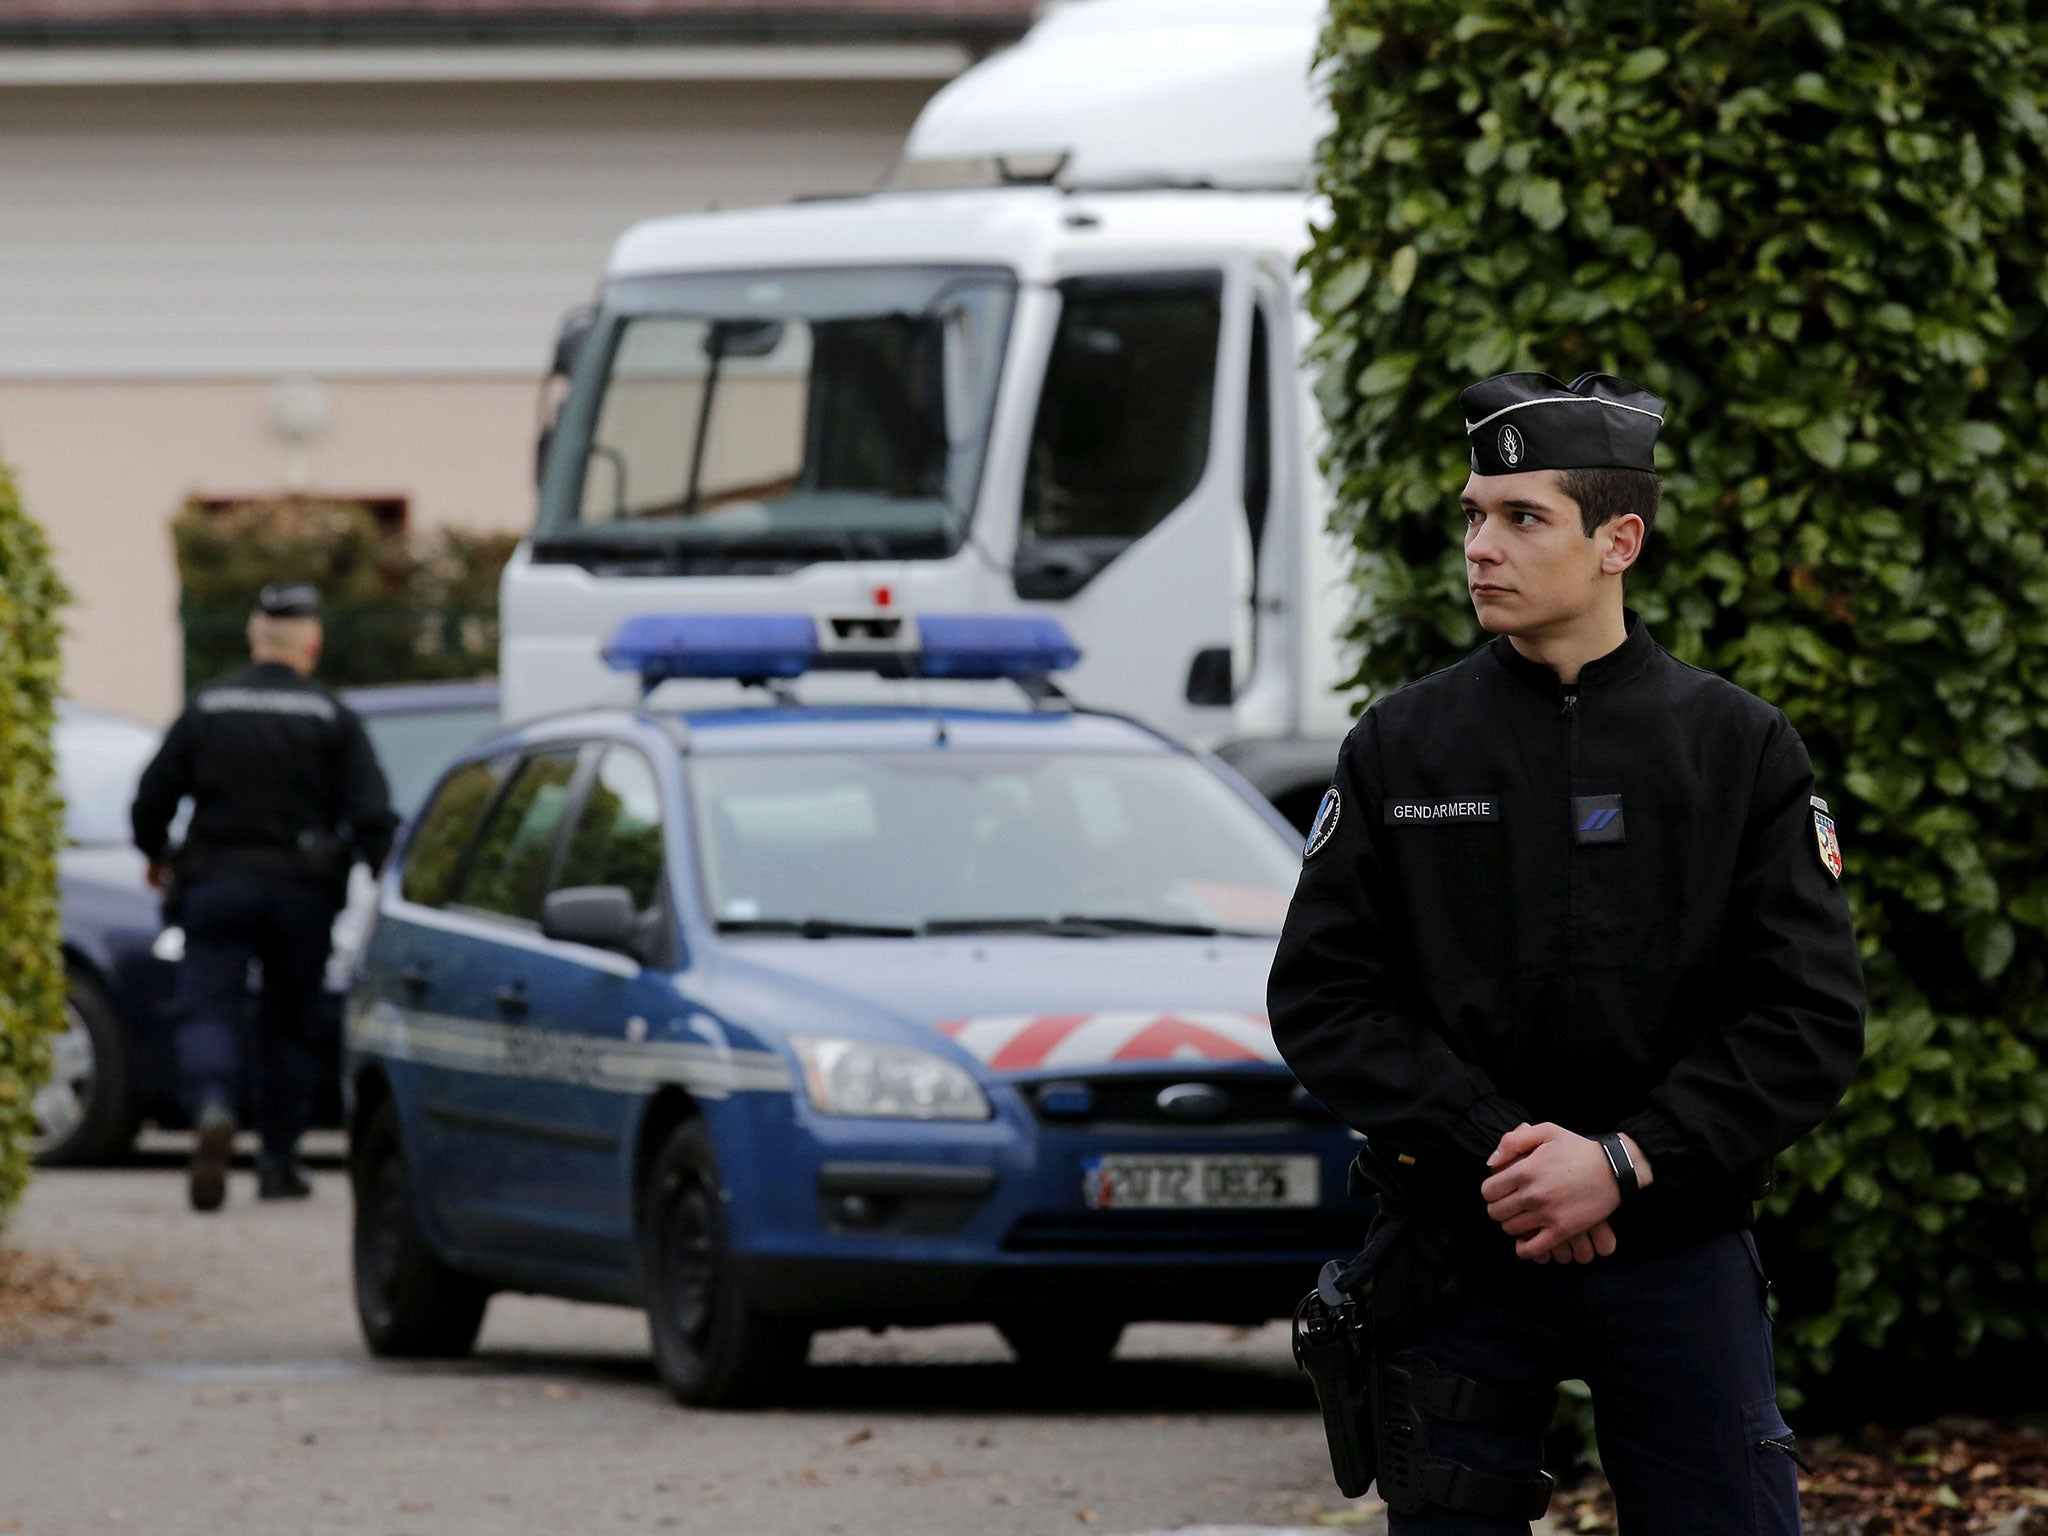 French alps murders dna found on car belonging to al hilli family broadens investigation the independent